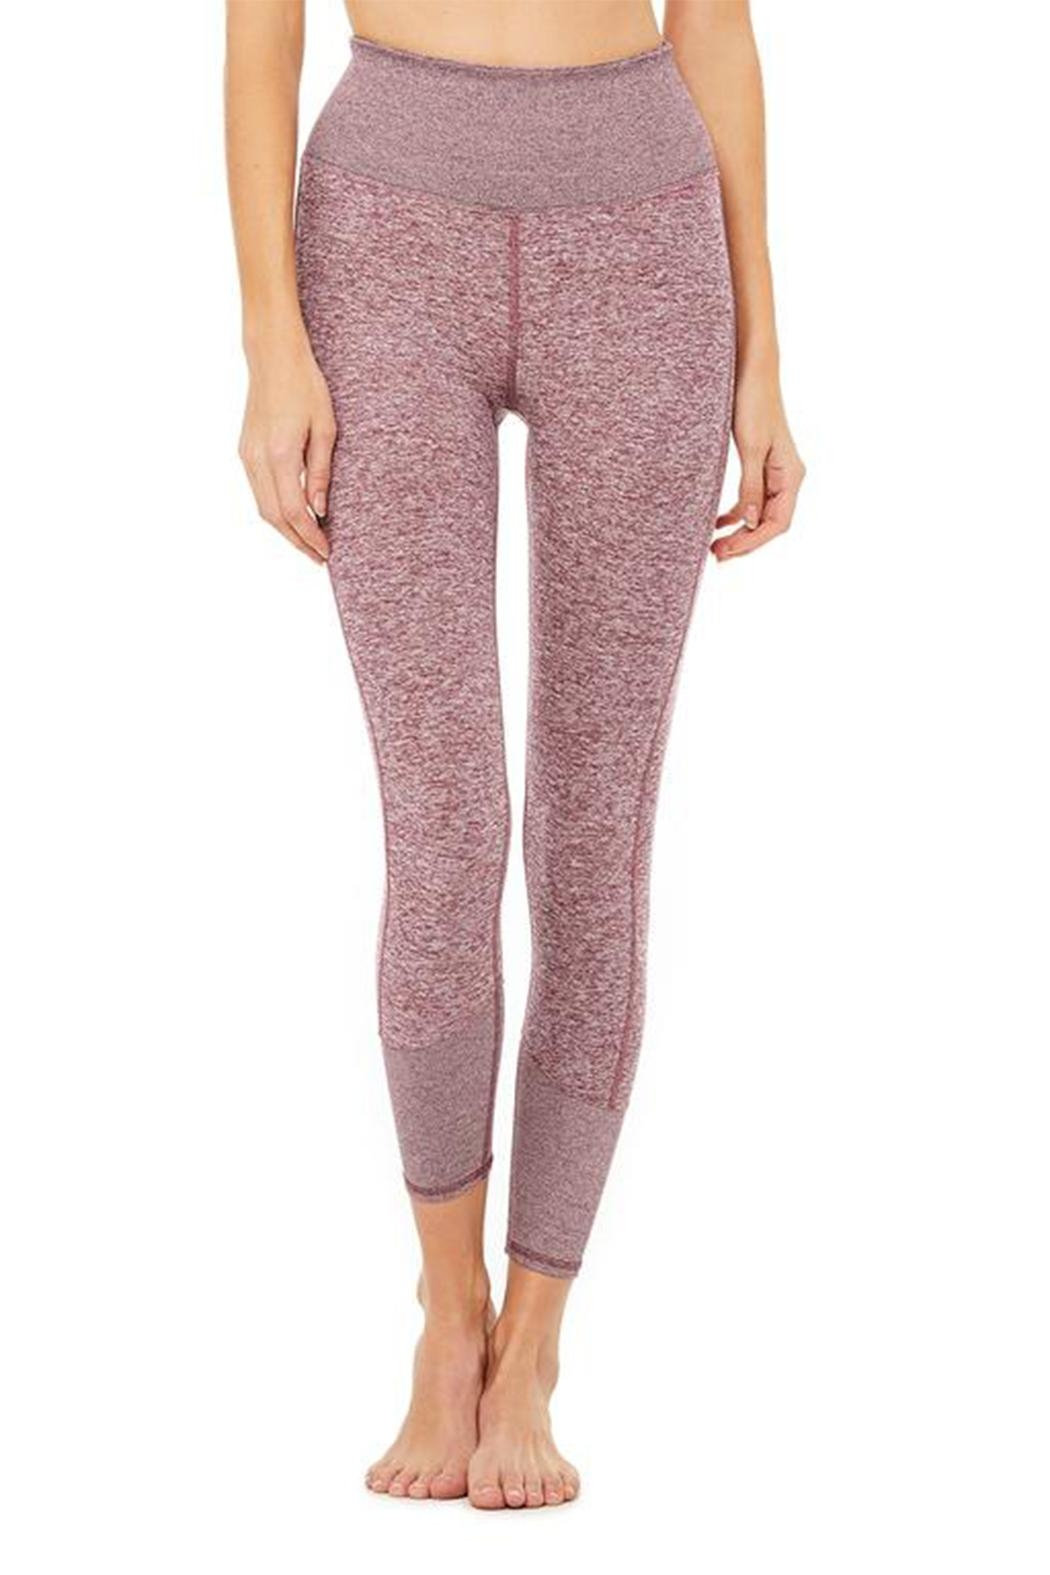 ALO Yoga 7/8 Lounge Legging - Front Cropped Image